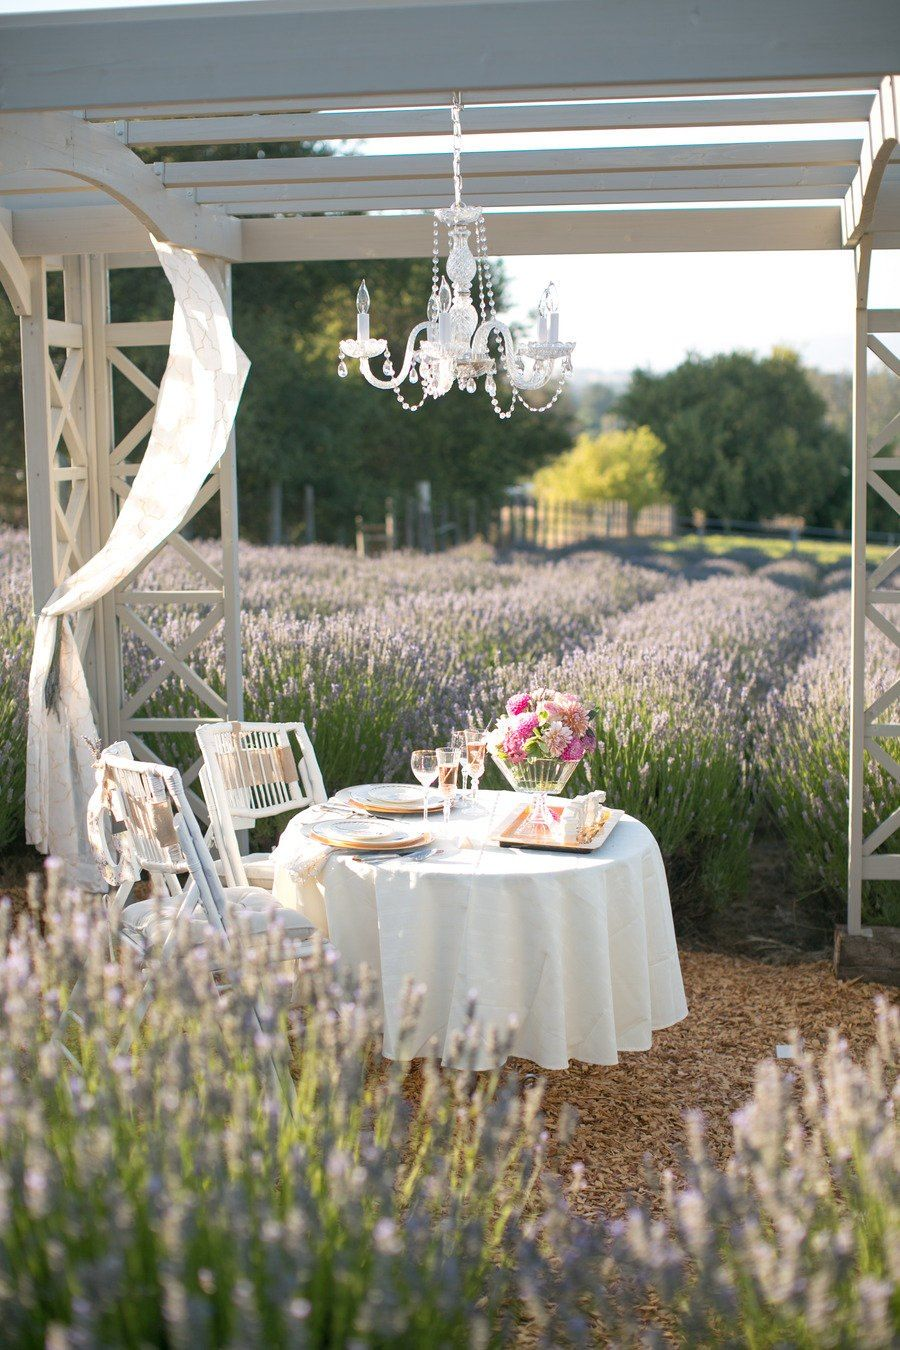 just a lovely table set amongst a field of lavender with a glittering chandelier powered by fairy dust - no biggie